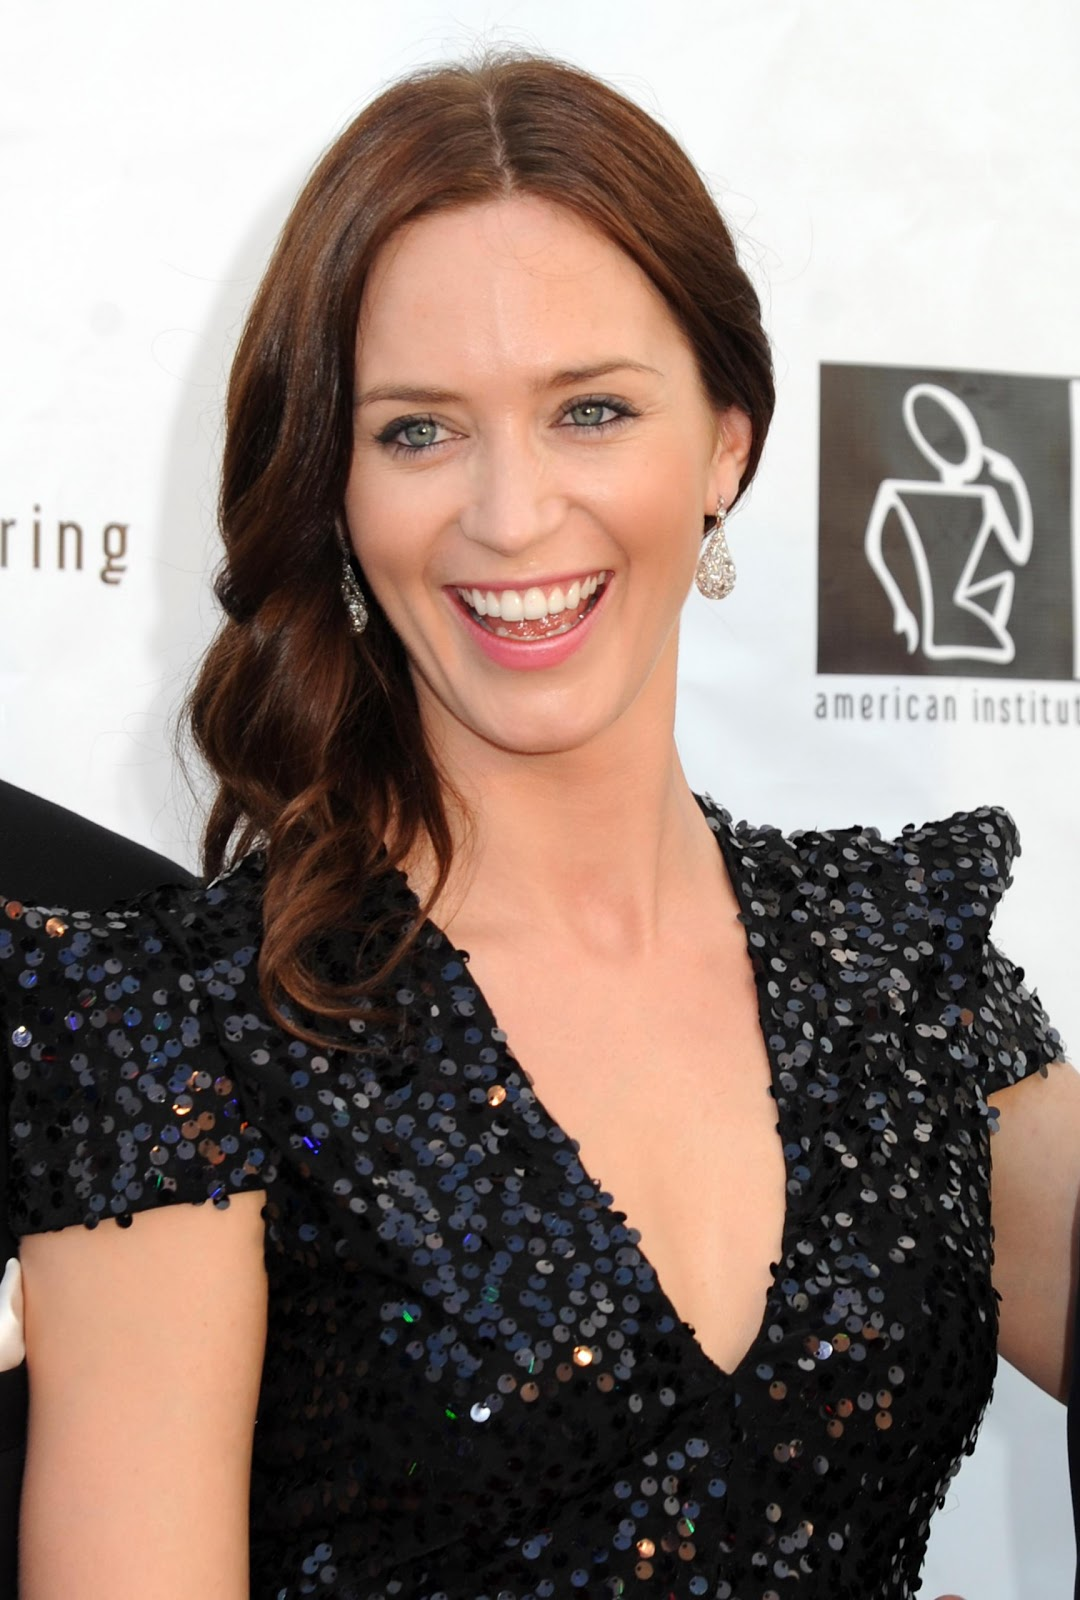 Phenomenal English Actress Emily Blunt Hairstyle Angled Bob Hairstyle Short Hairstyles Gunalazisus